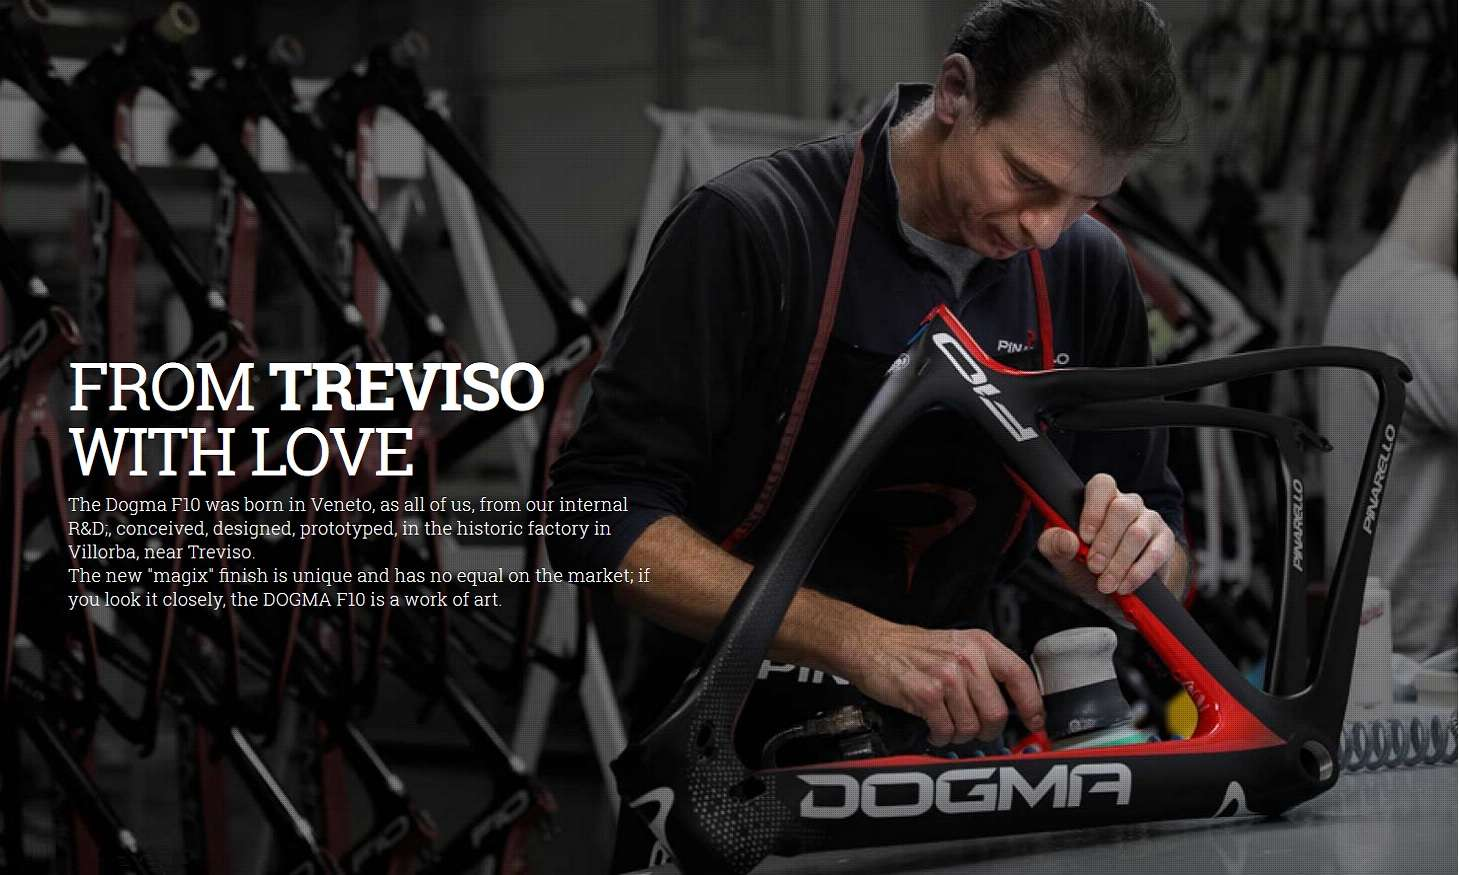 Pinarello Dogma F10: Assembled by Italian Artisans in Treviso